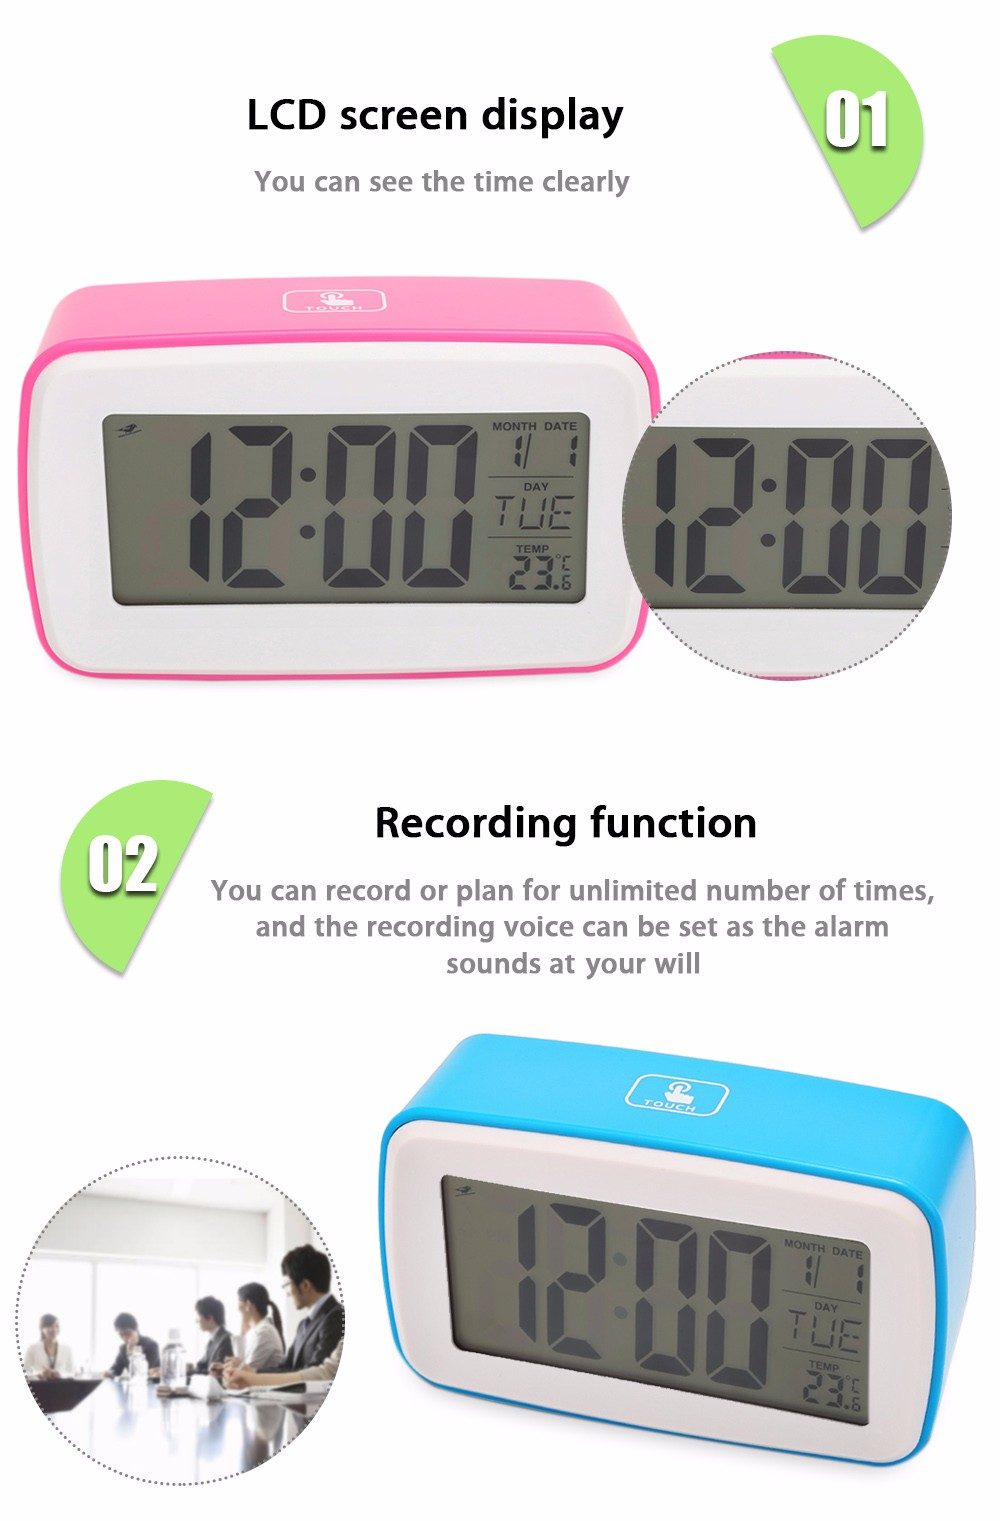 8 in 1 Smart Touch Sensor Luminous LCD Screen Digital Snooze Clock Personalized Recording Alarm with Date Temperature Display